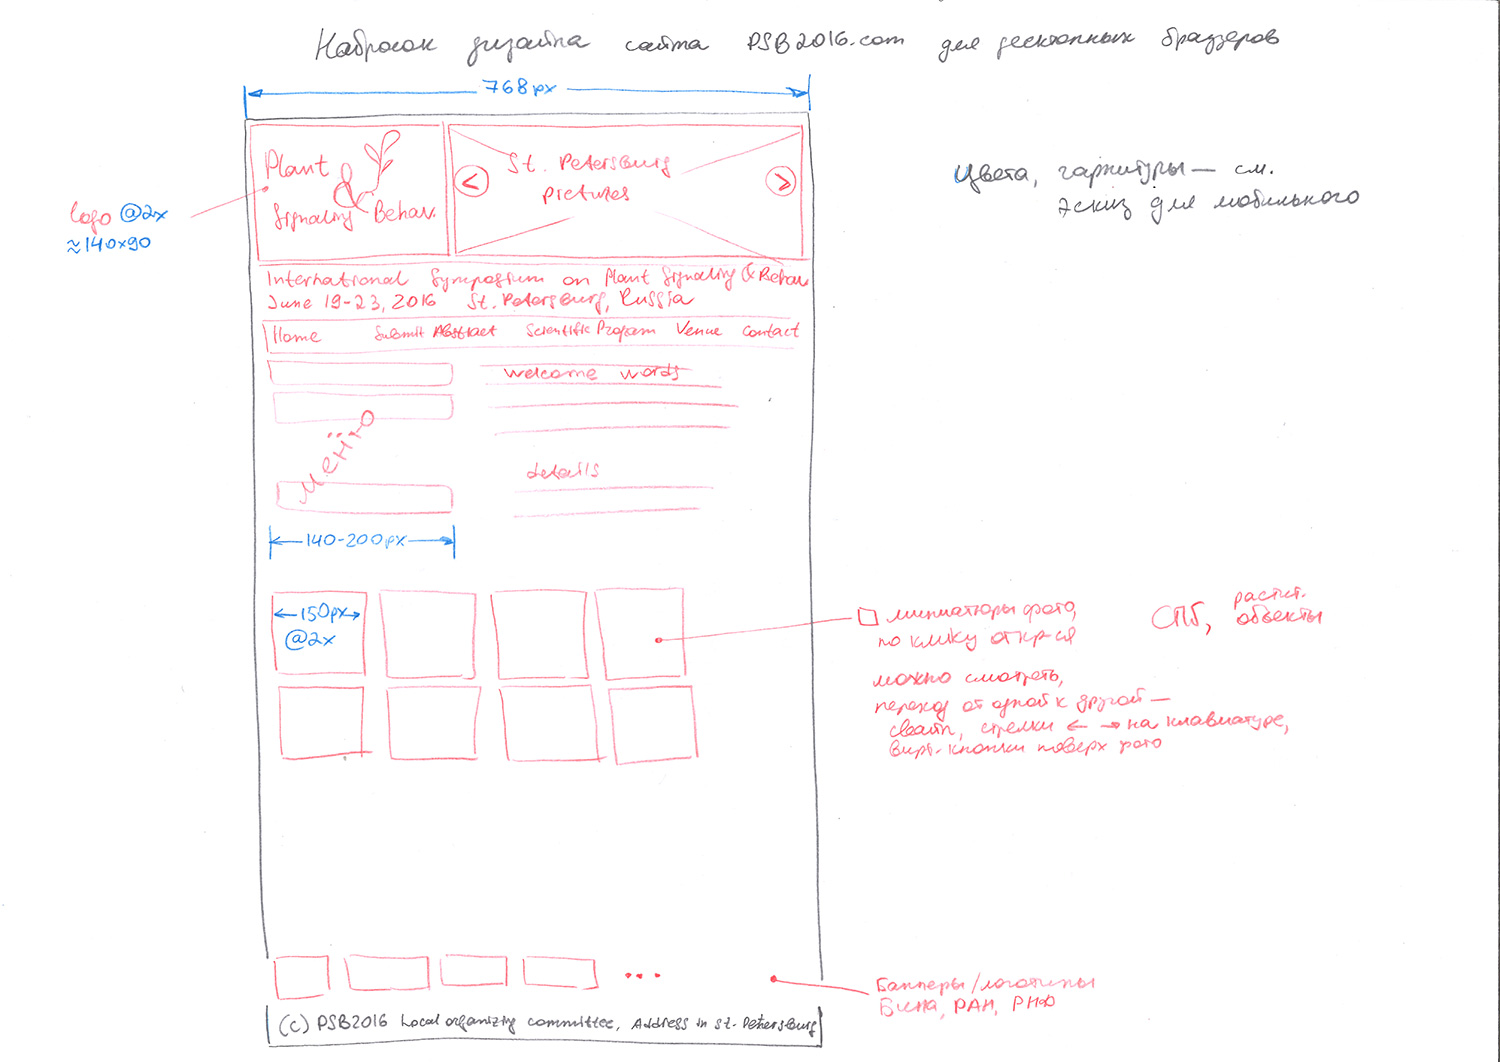 PSB2016 website design sketch for desktops